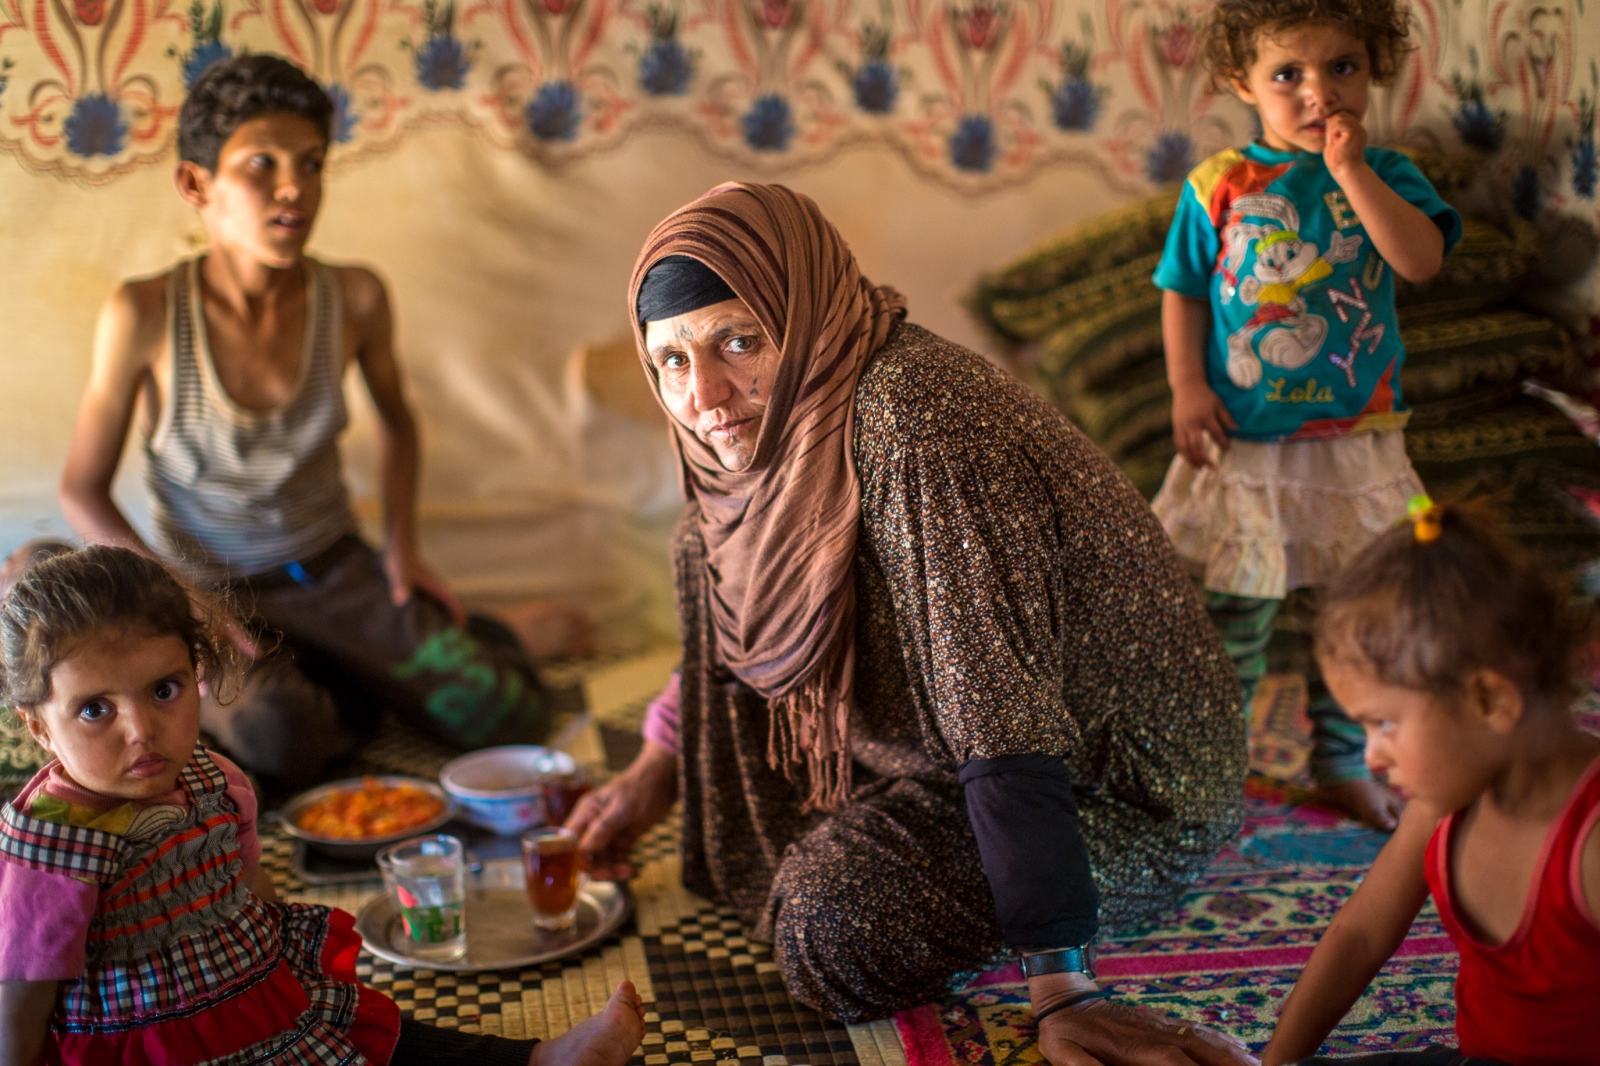 Bekaa Valley, LEBANON, September 5, 2015: Amina with four of her five children in their tent. She is the center of their lives as their father or other male figures are absent. Many refugee women are single parents as their husbands have gone missing or been killed in the Syrian war.